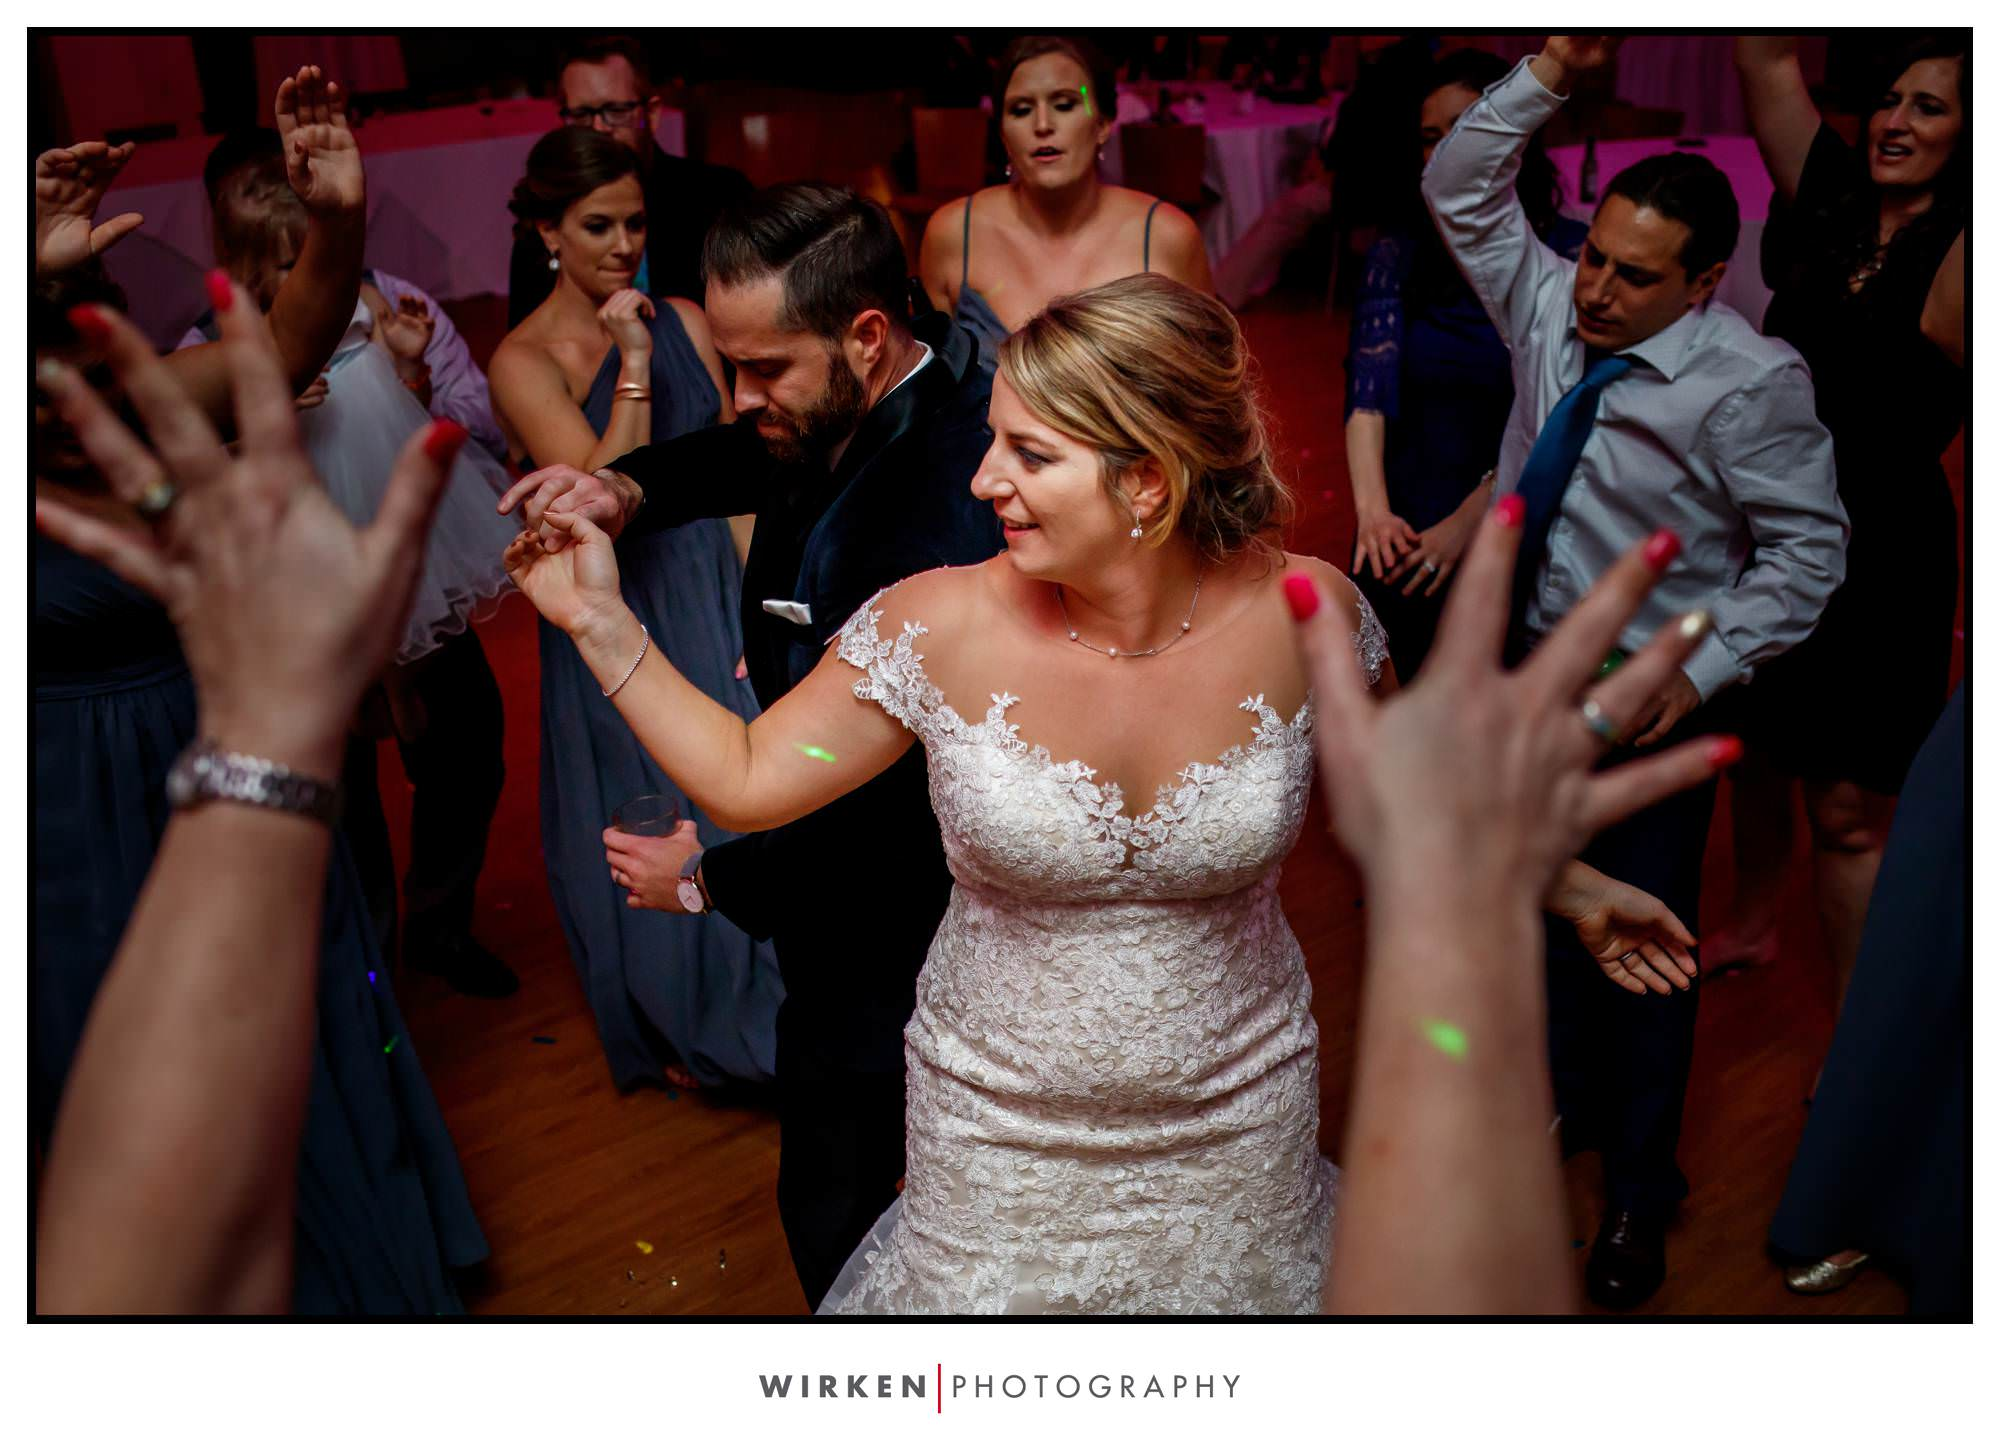 Leah and Ryan dance at their Gallery Center wedding reception.